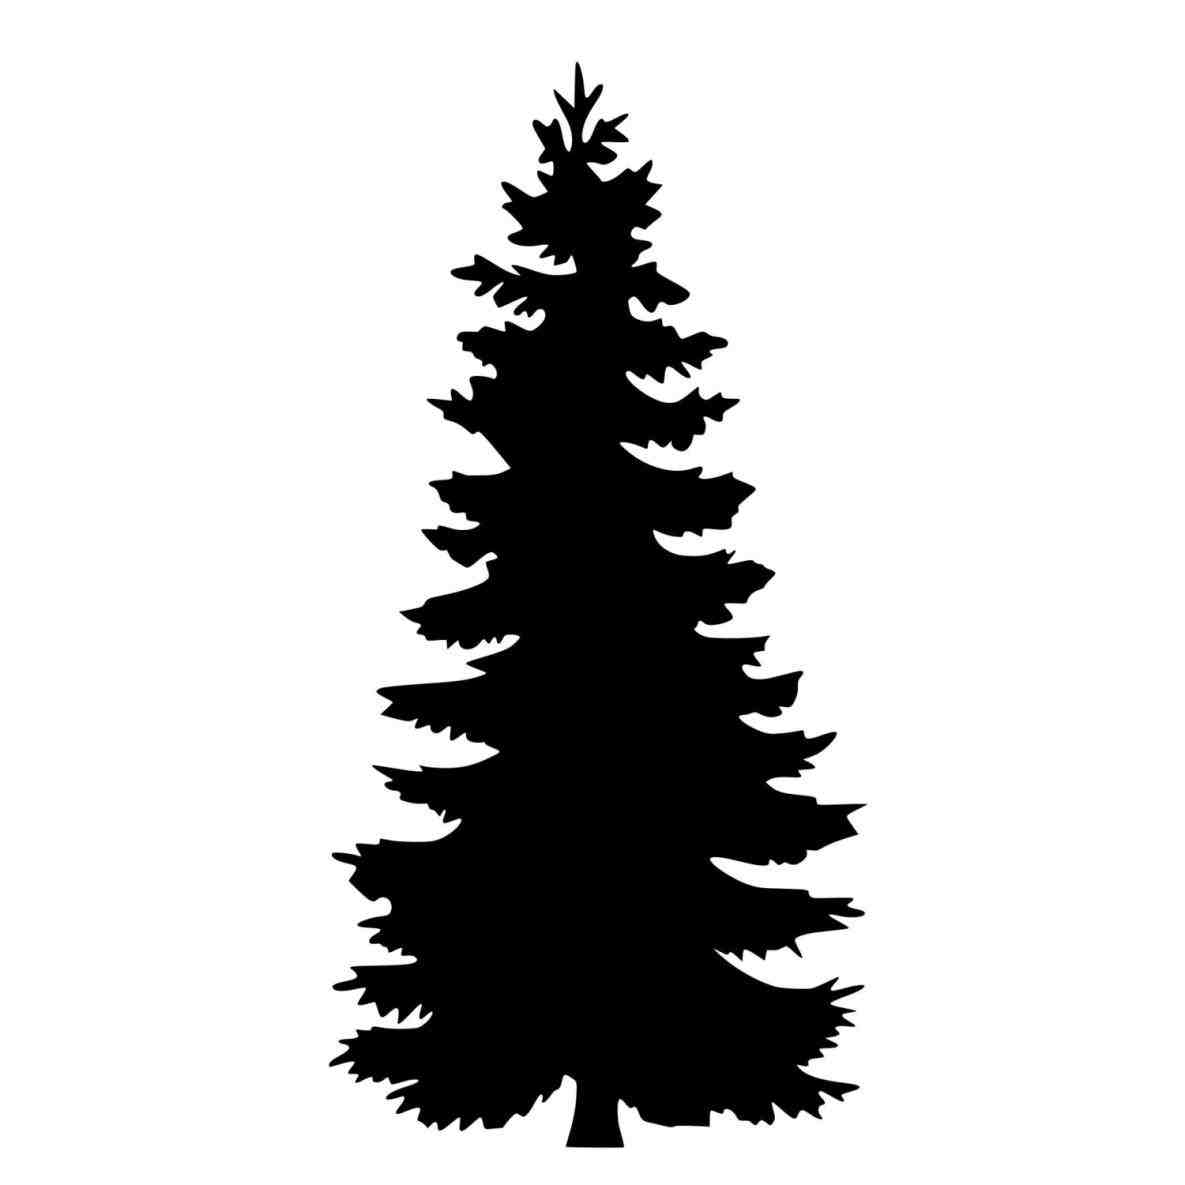 tree clip art silhouette at getdrawings com free for personal use rh getdrawings com  evergreen tree with snow clipart